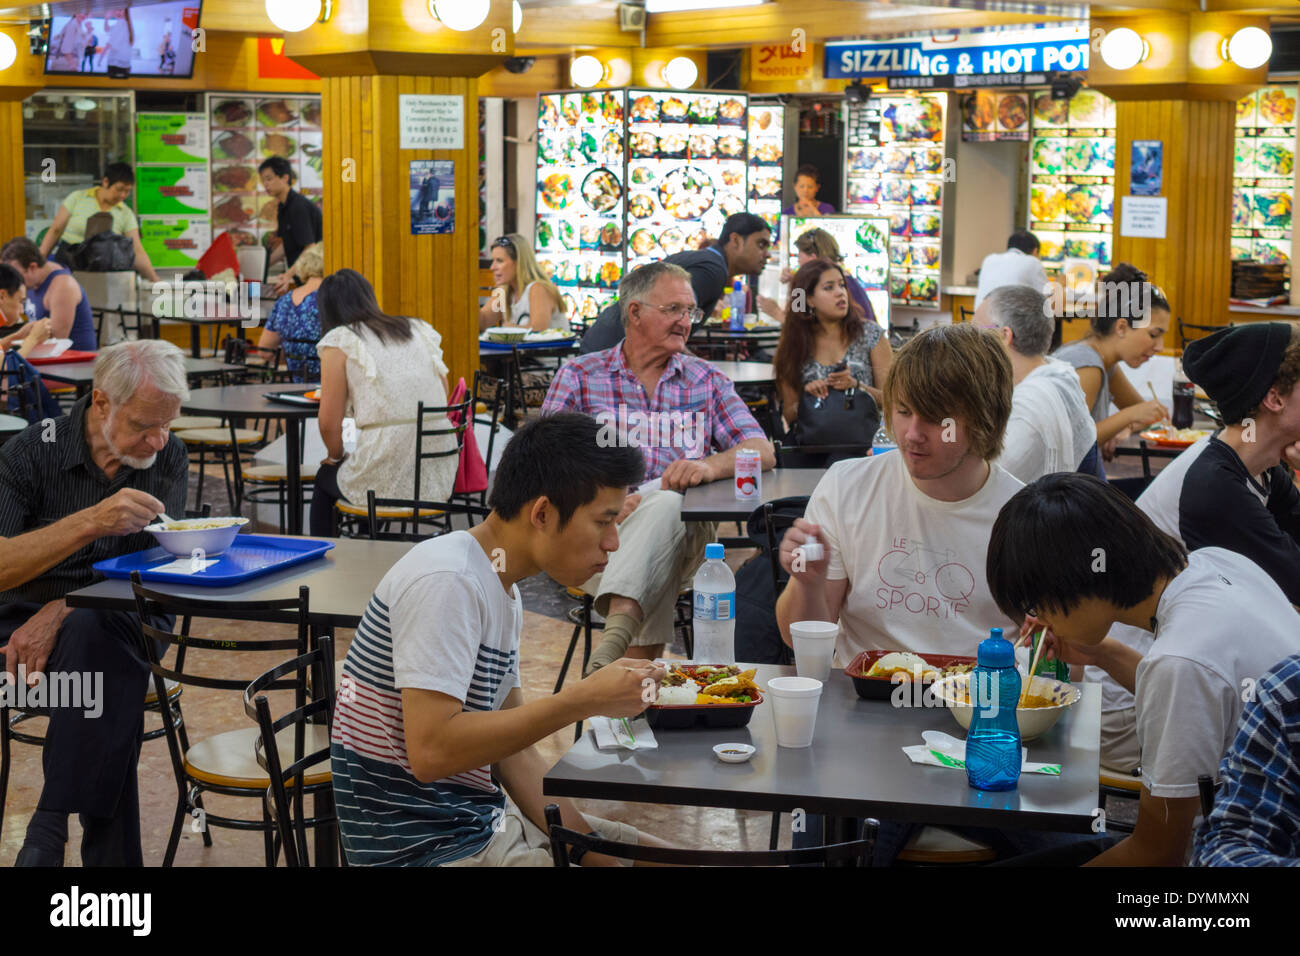 Sydney Australia NSW New South Wales Haymarket Dixon Street Dixon House Food Court Asian man friends eating dining restaurant - Stock Image